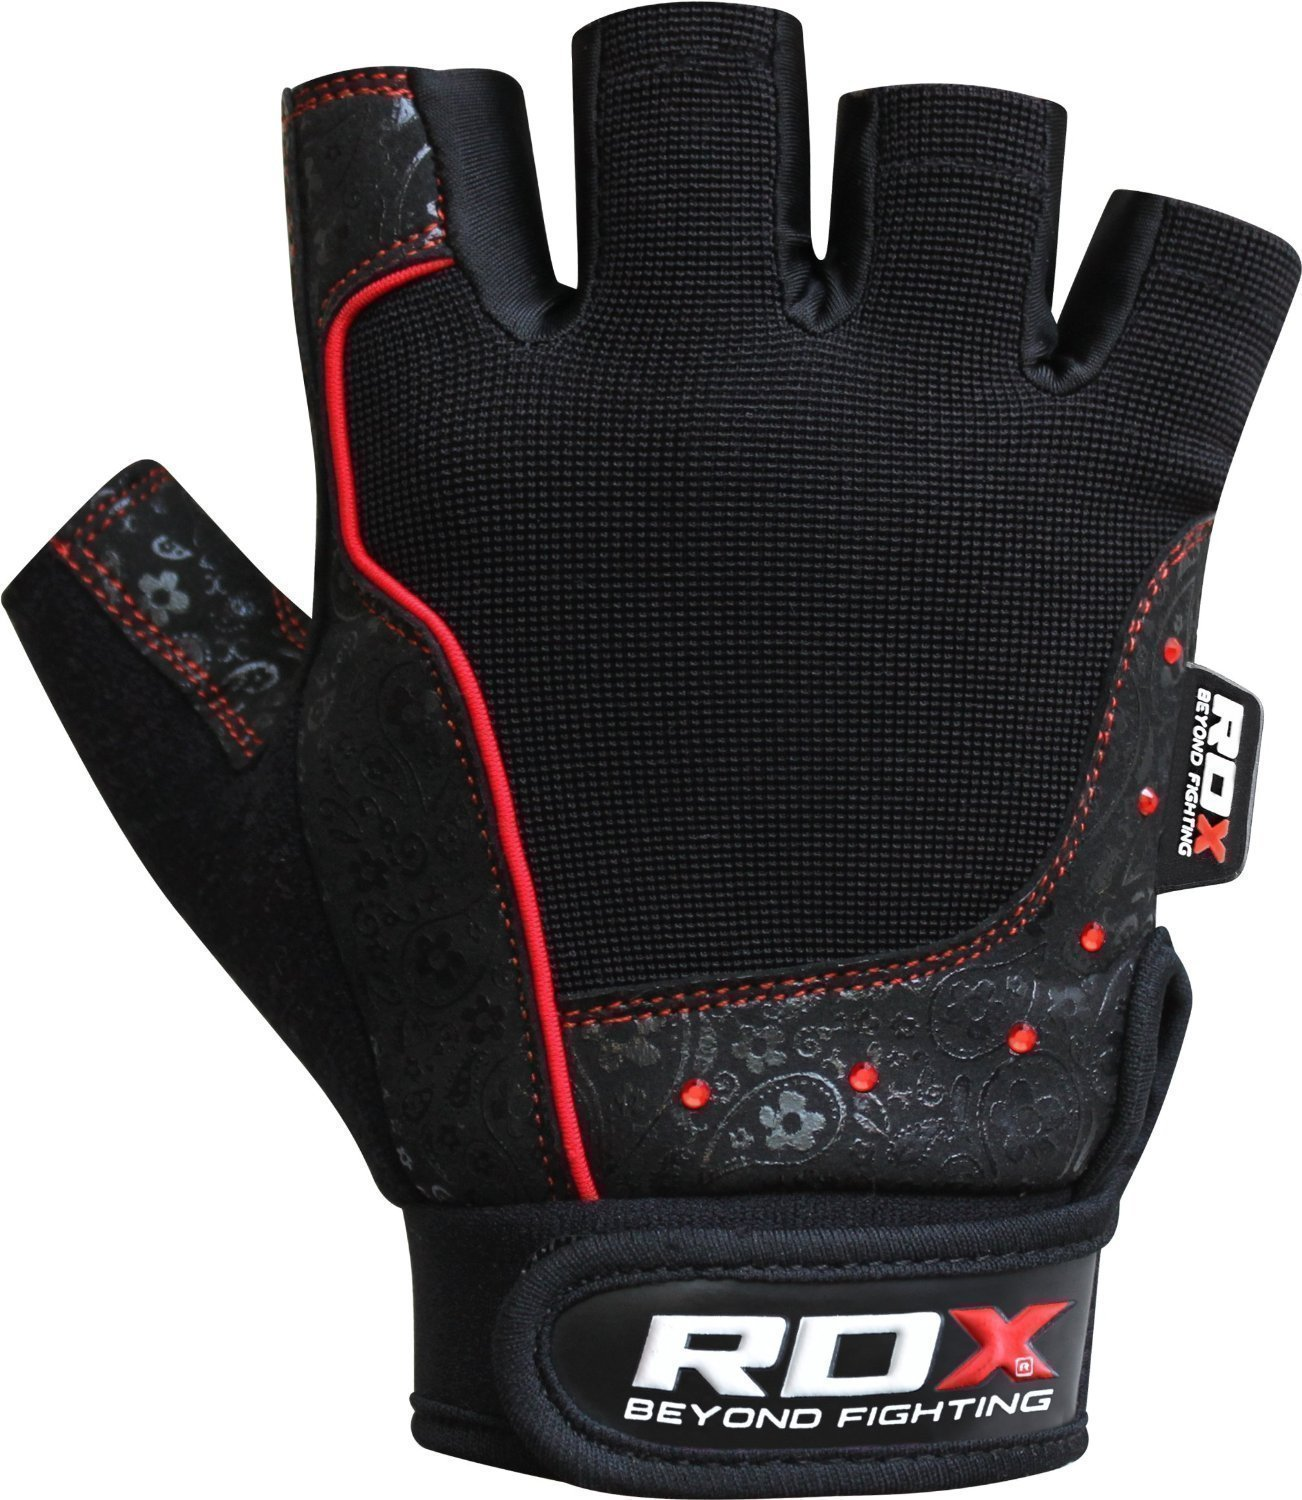 Ladies leather cycling gloves - Amazon Com Rdx Gym Weight Lifting Gloves Women Workout Fitness Ladies Bodybuilding Crossfit Breathable Powerlifting Wrist Support Strength Training